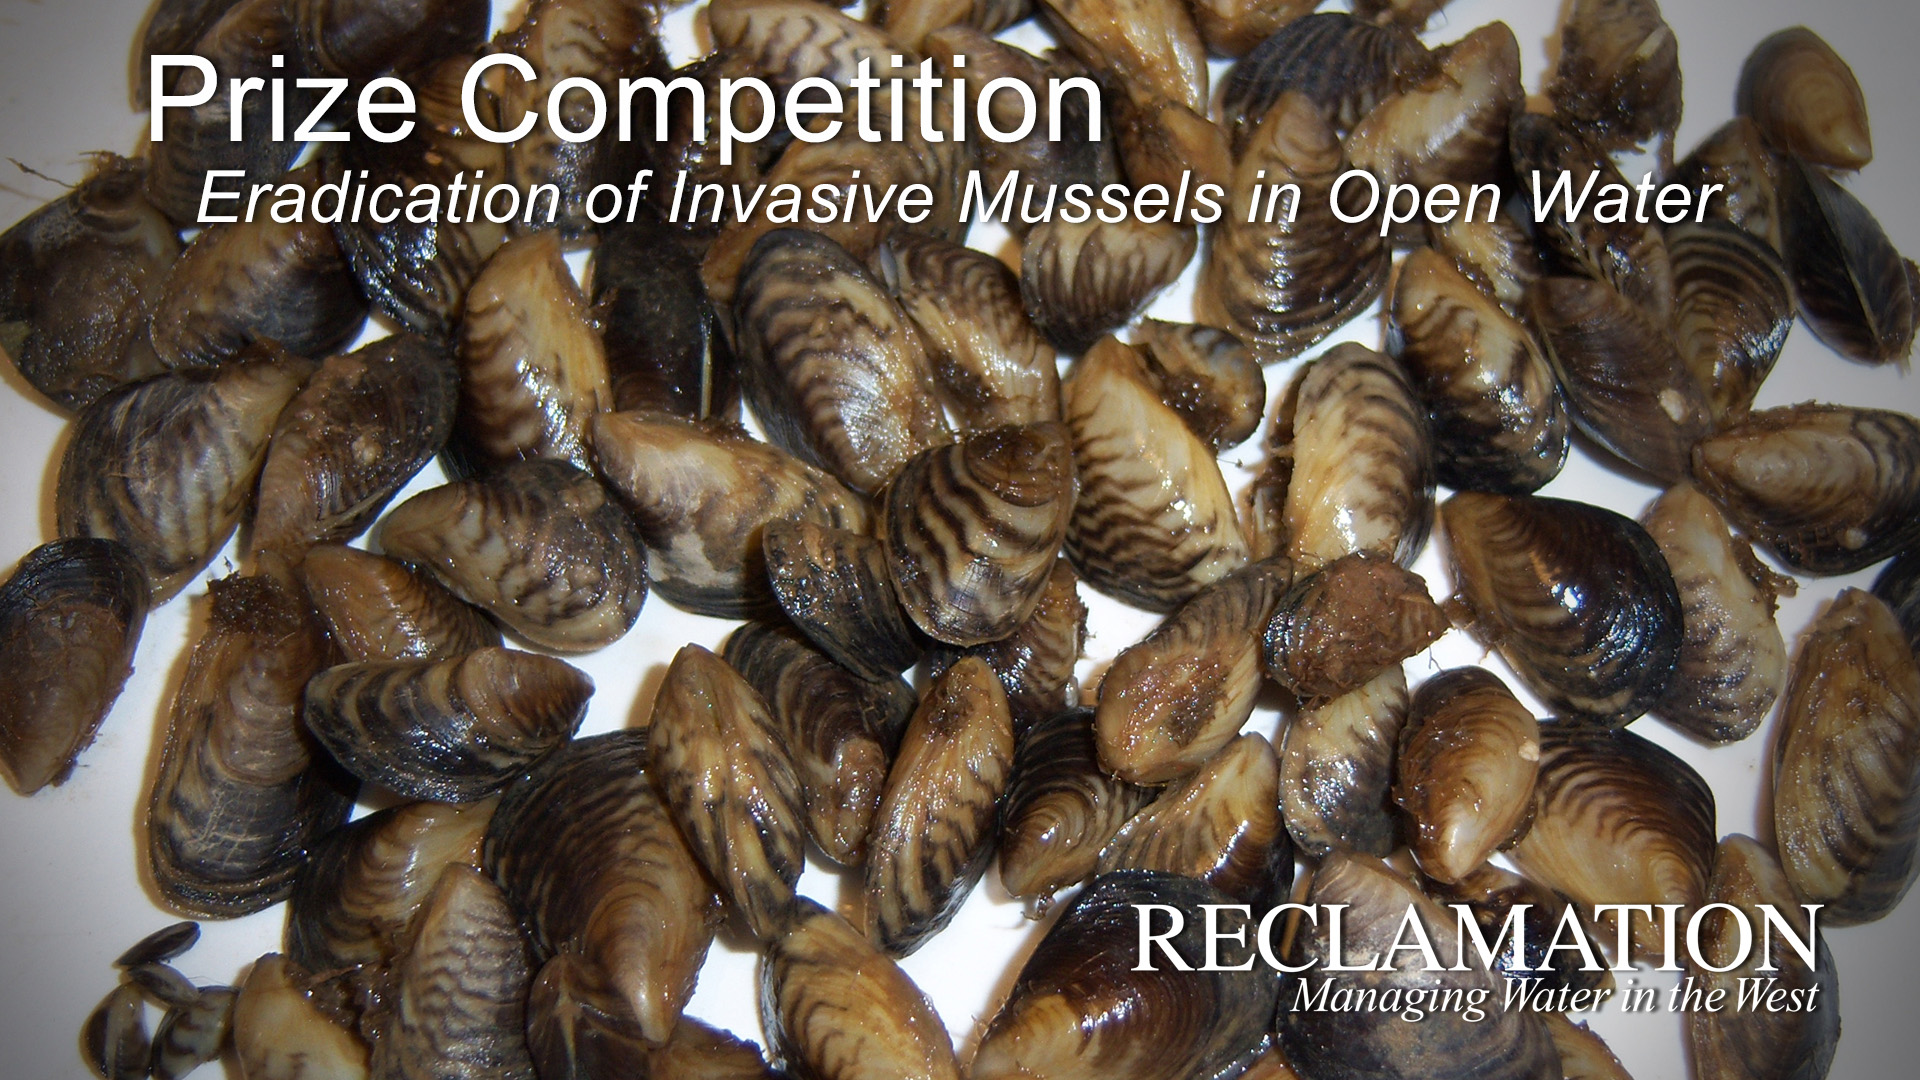 Image of invasive mussels with text: Prize Competition, Eradicaton of Invasive Mussels, Reclamation Managing Water in the West.